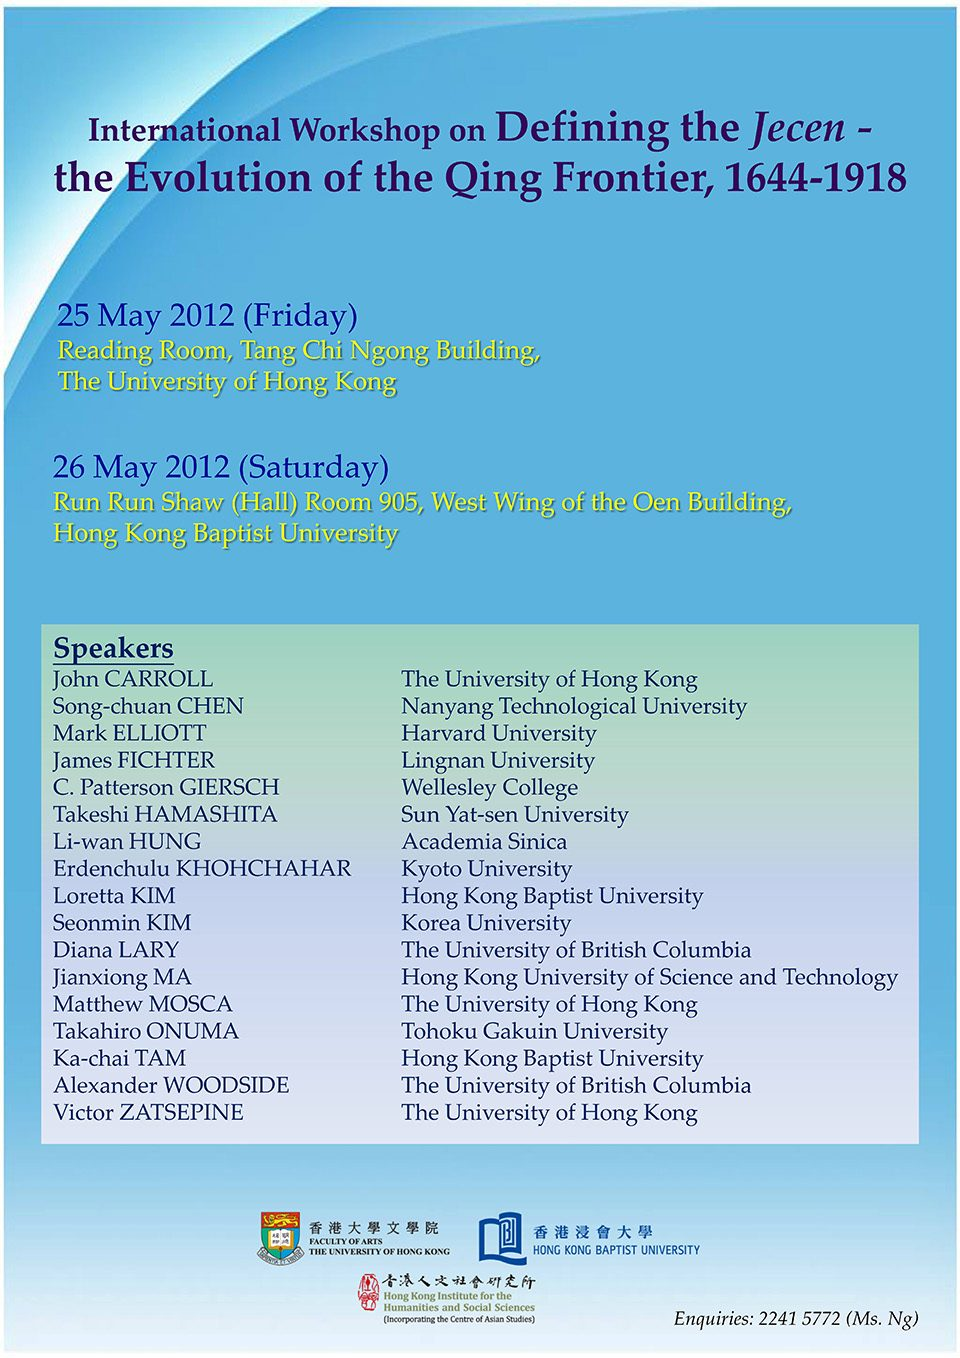 International Workshop on Defining the Jecen-the Evolution of the Qing Frontier, 1644-1918 (May 25-26, 2012)